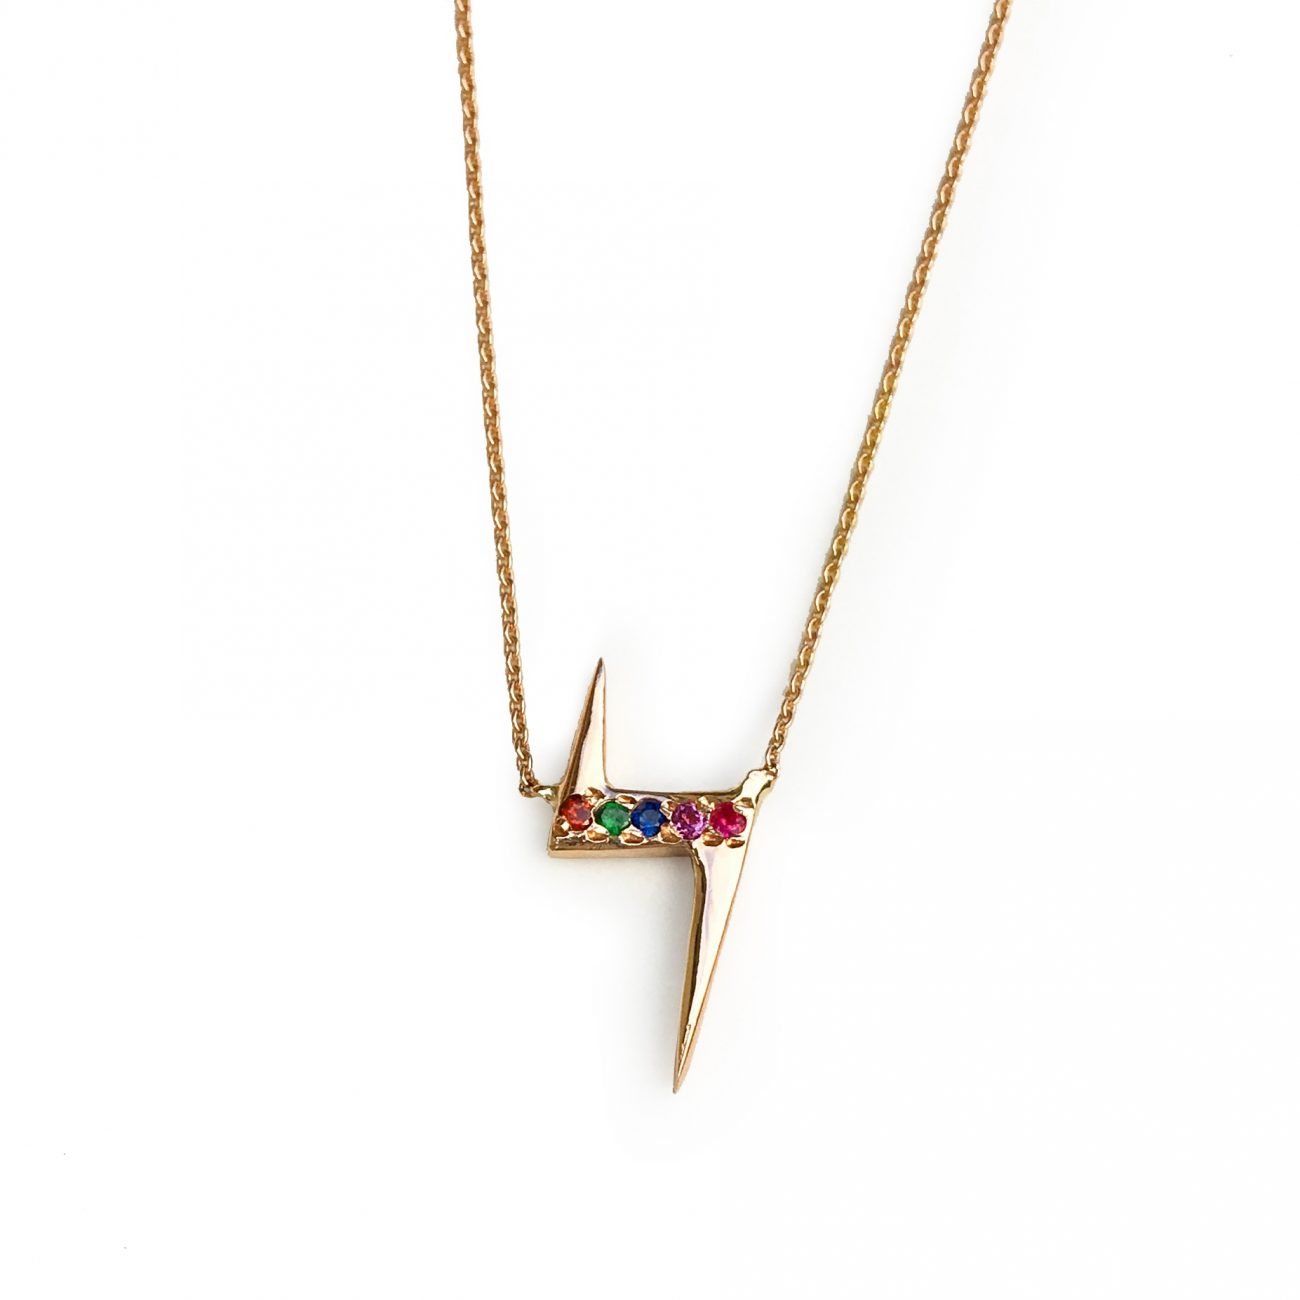 lightening-bolt-necklace-yellow-gold